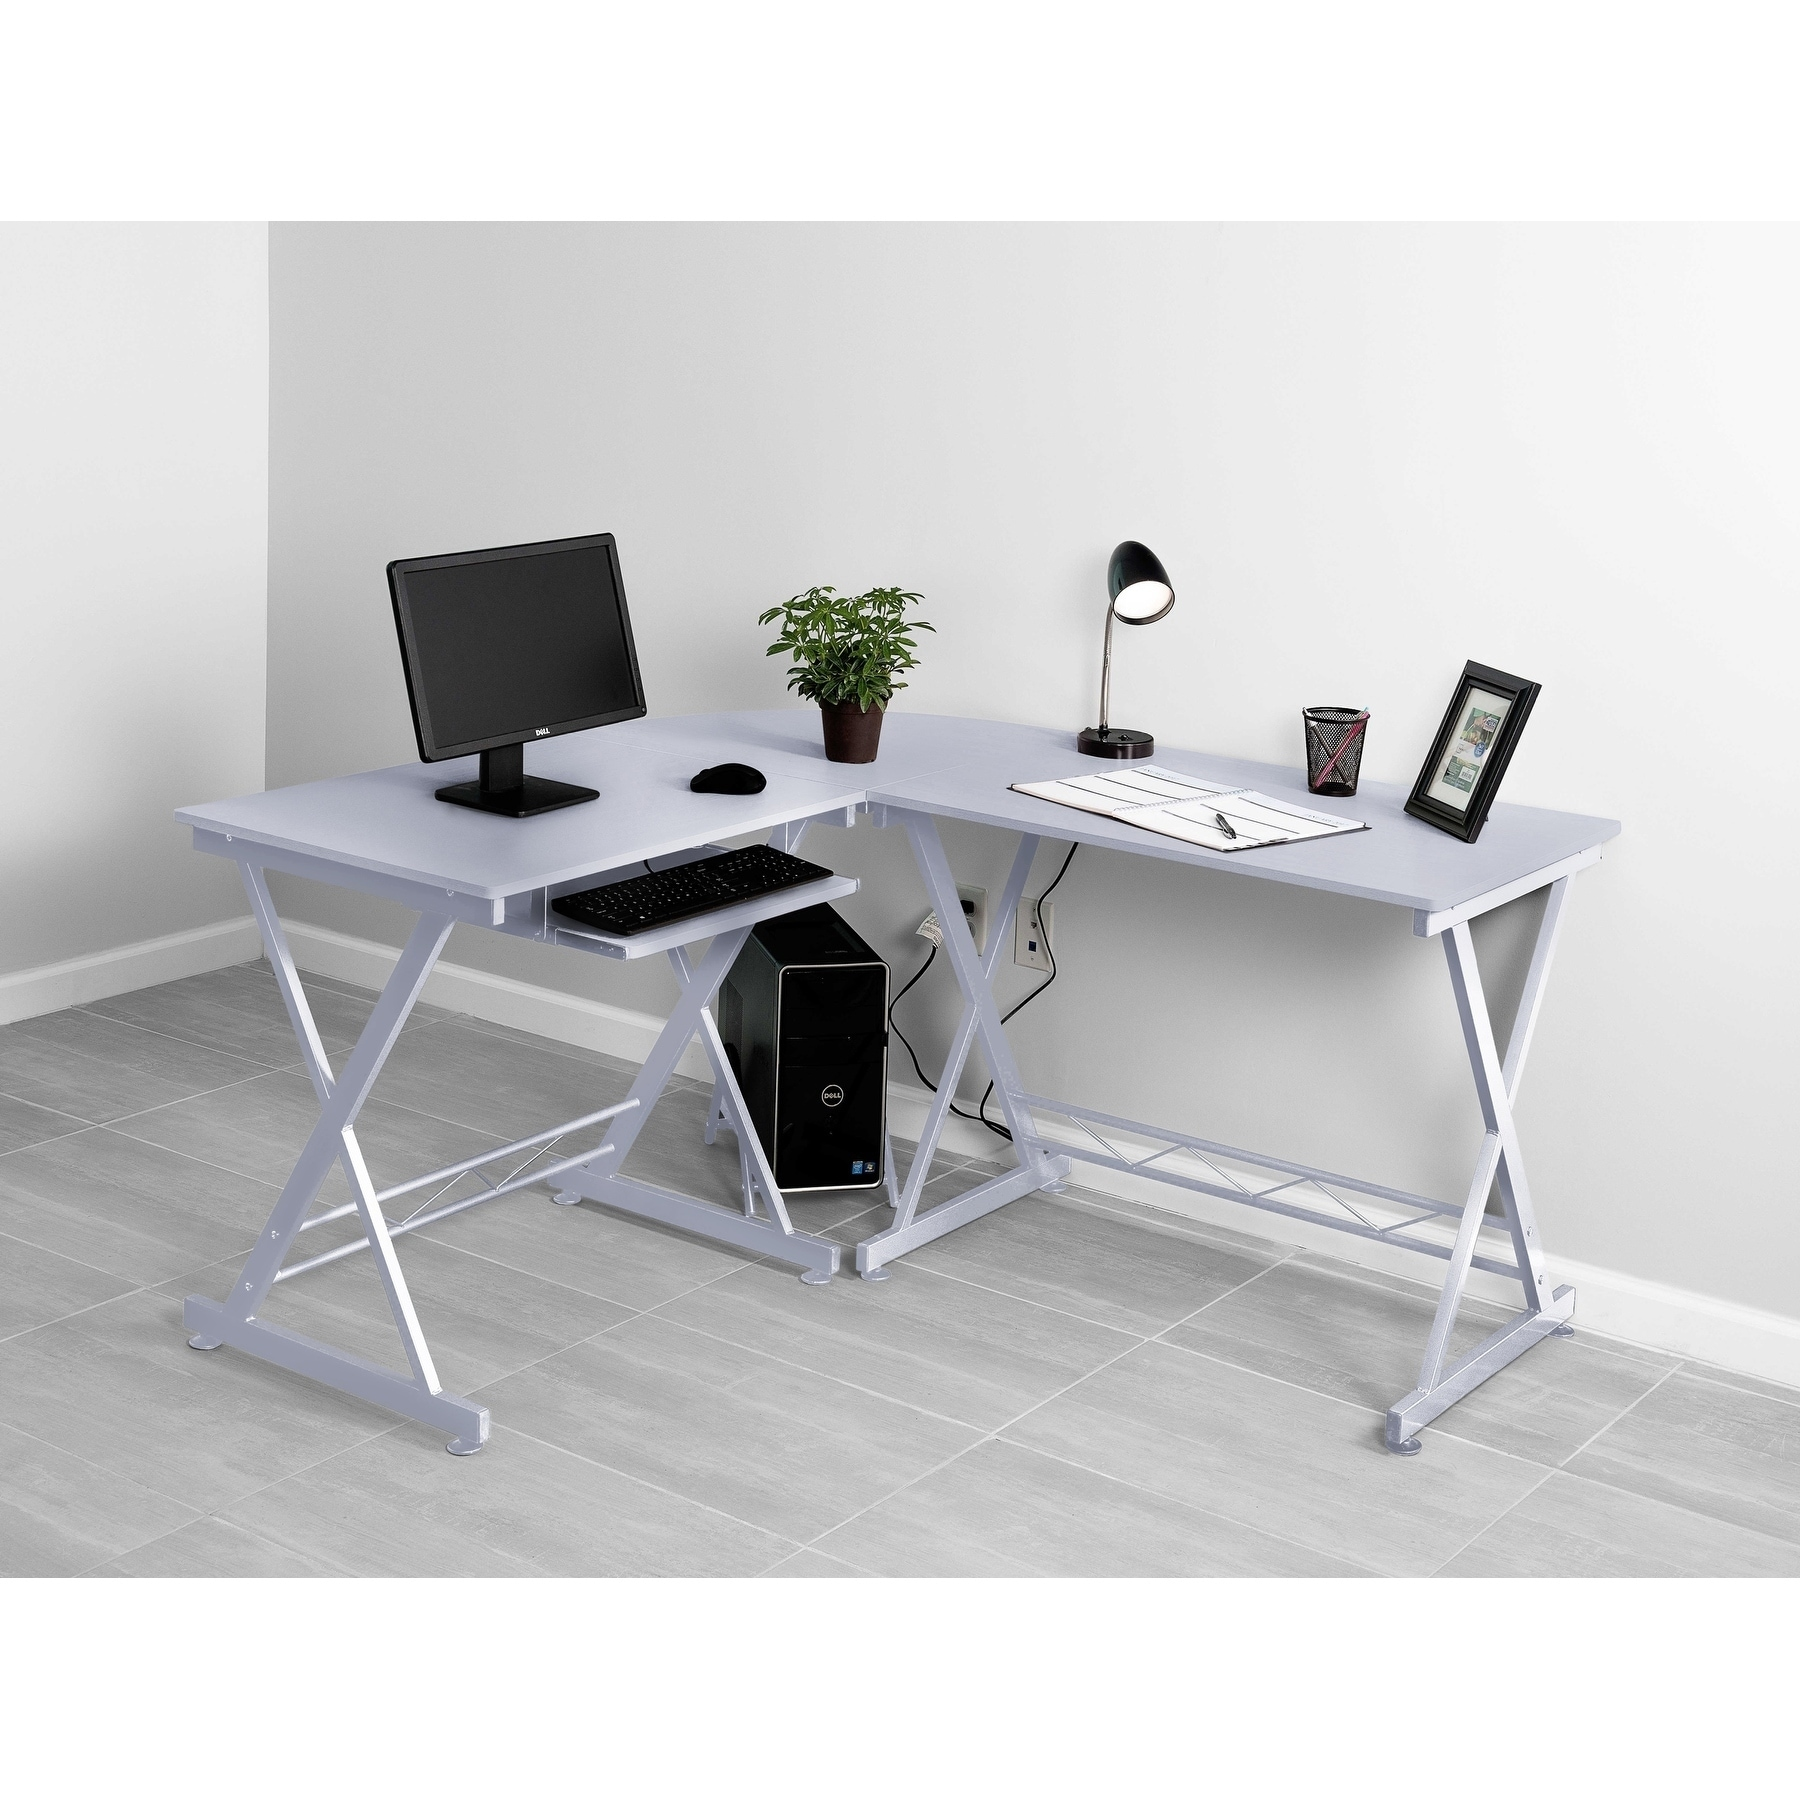 Shop Fineboard Home Office L-Shaped Corner Desk - Free Shipping ...